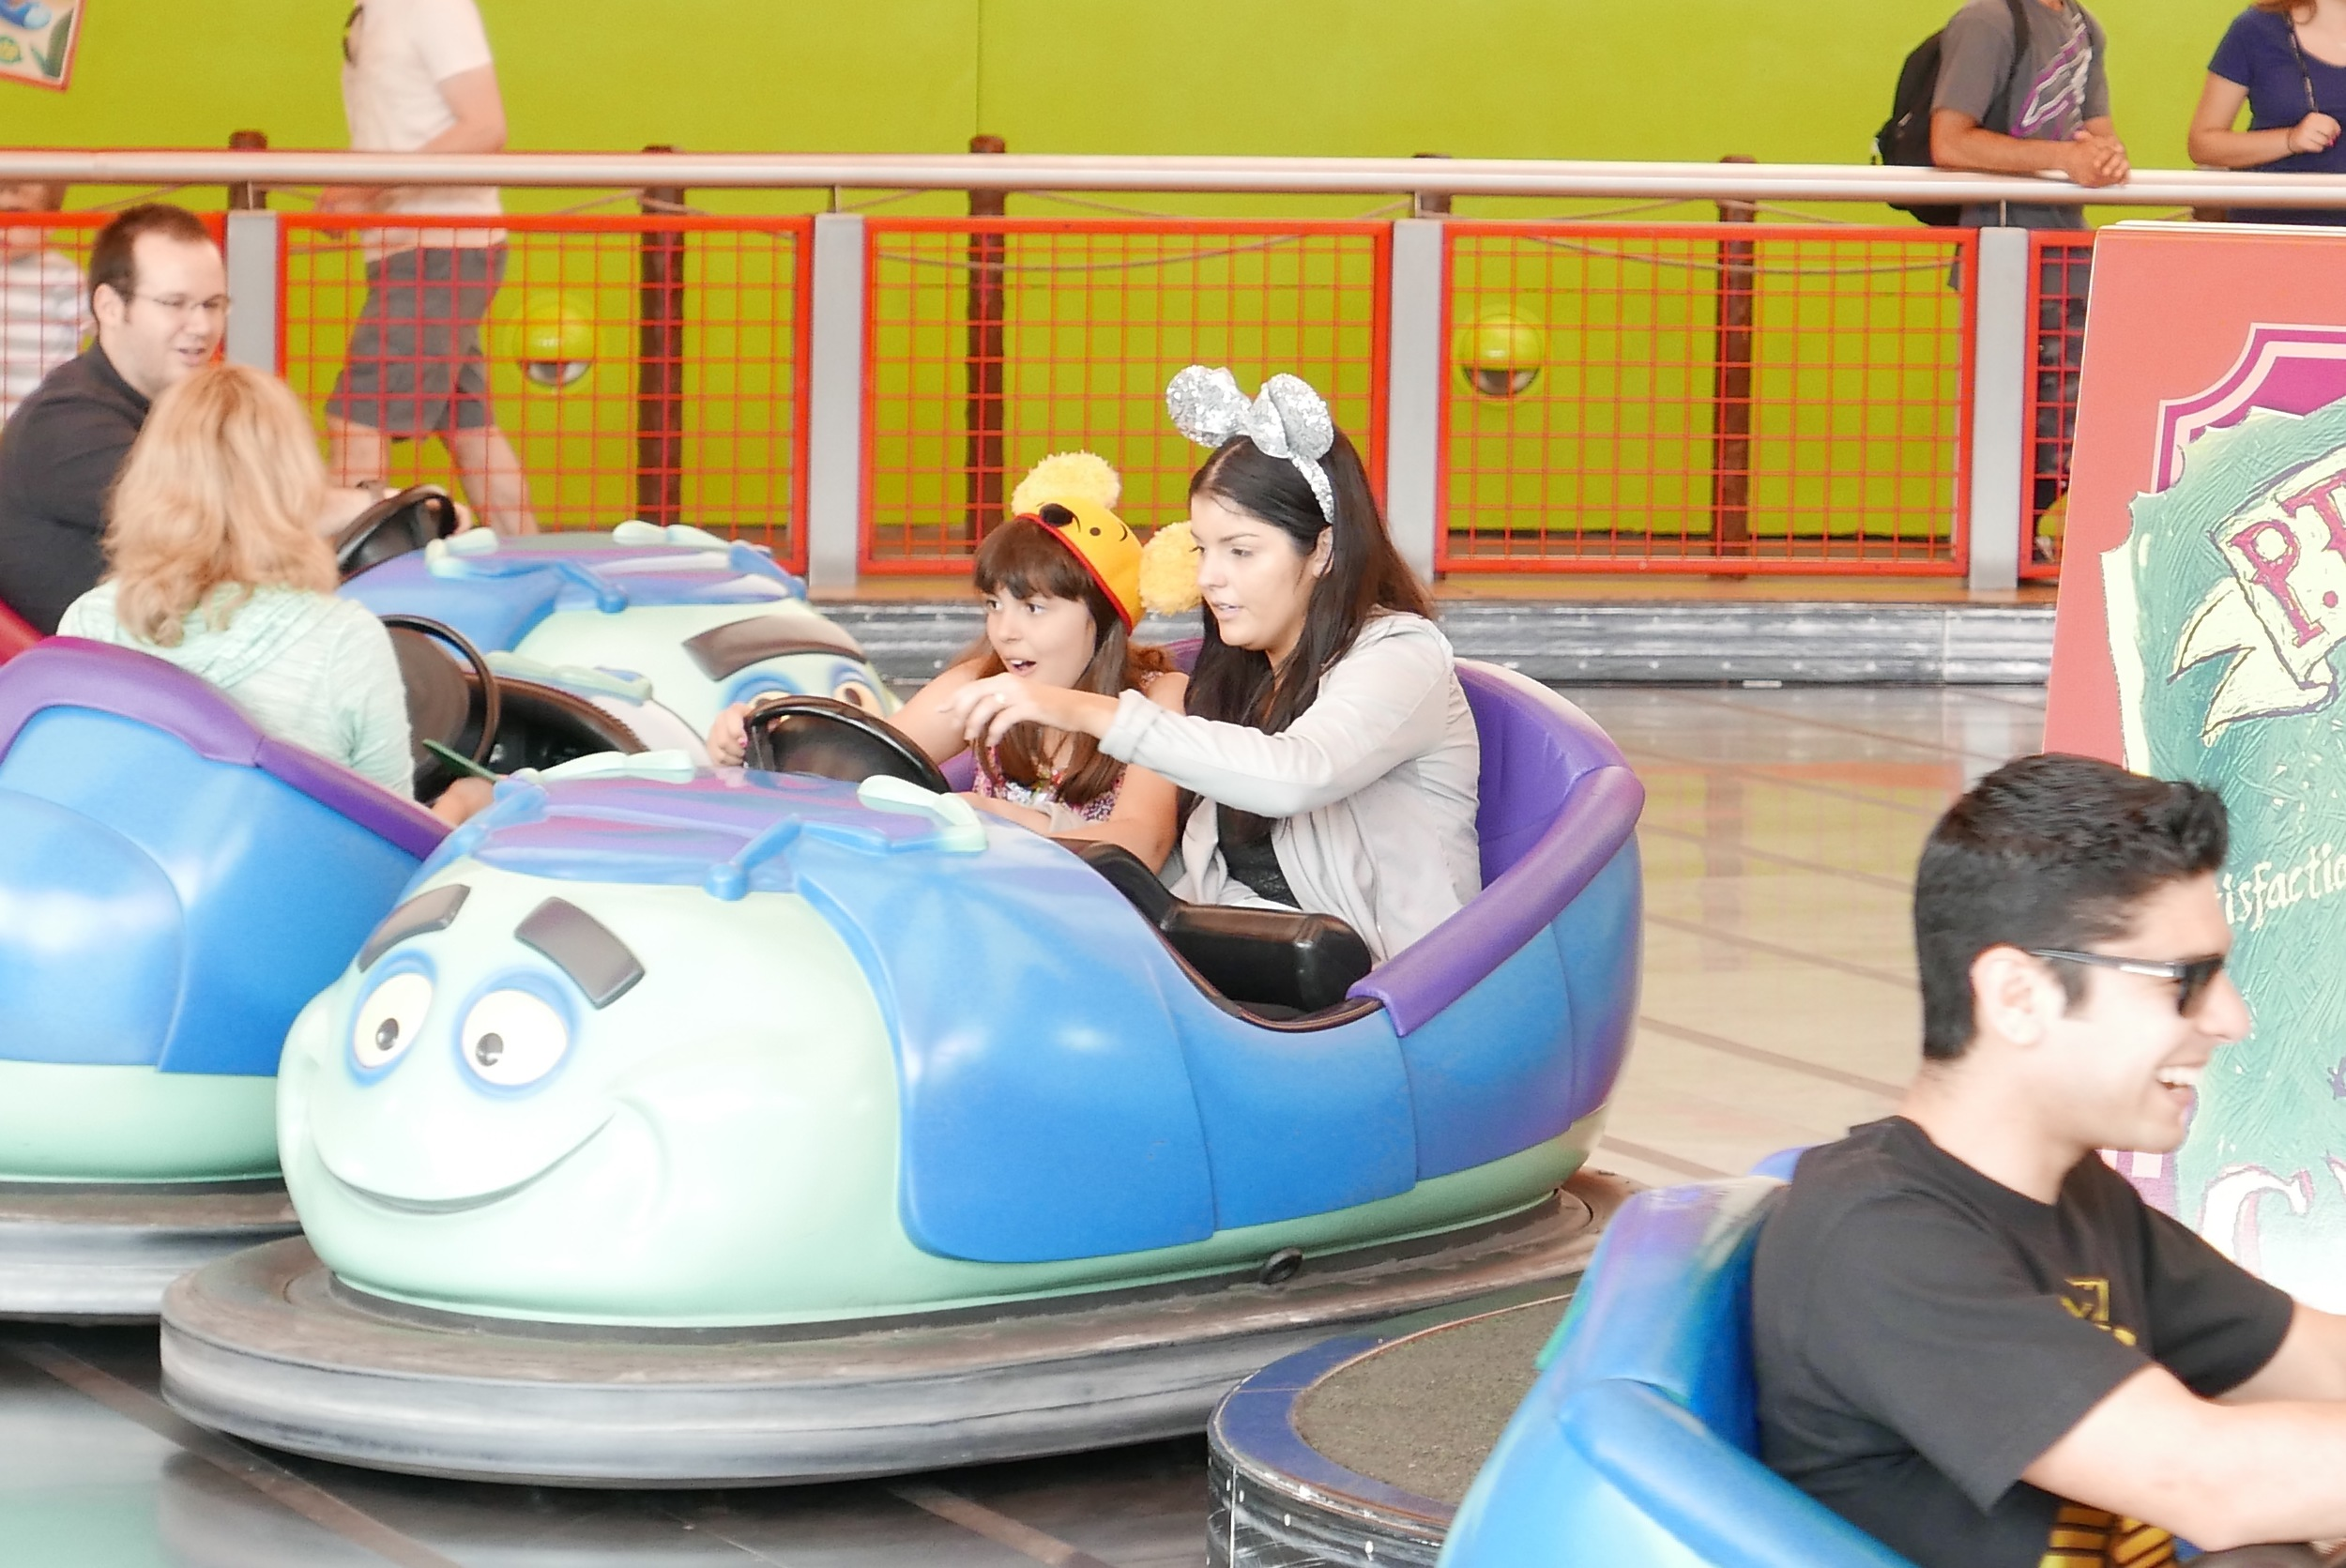 me and my sister on the bumper cars